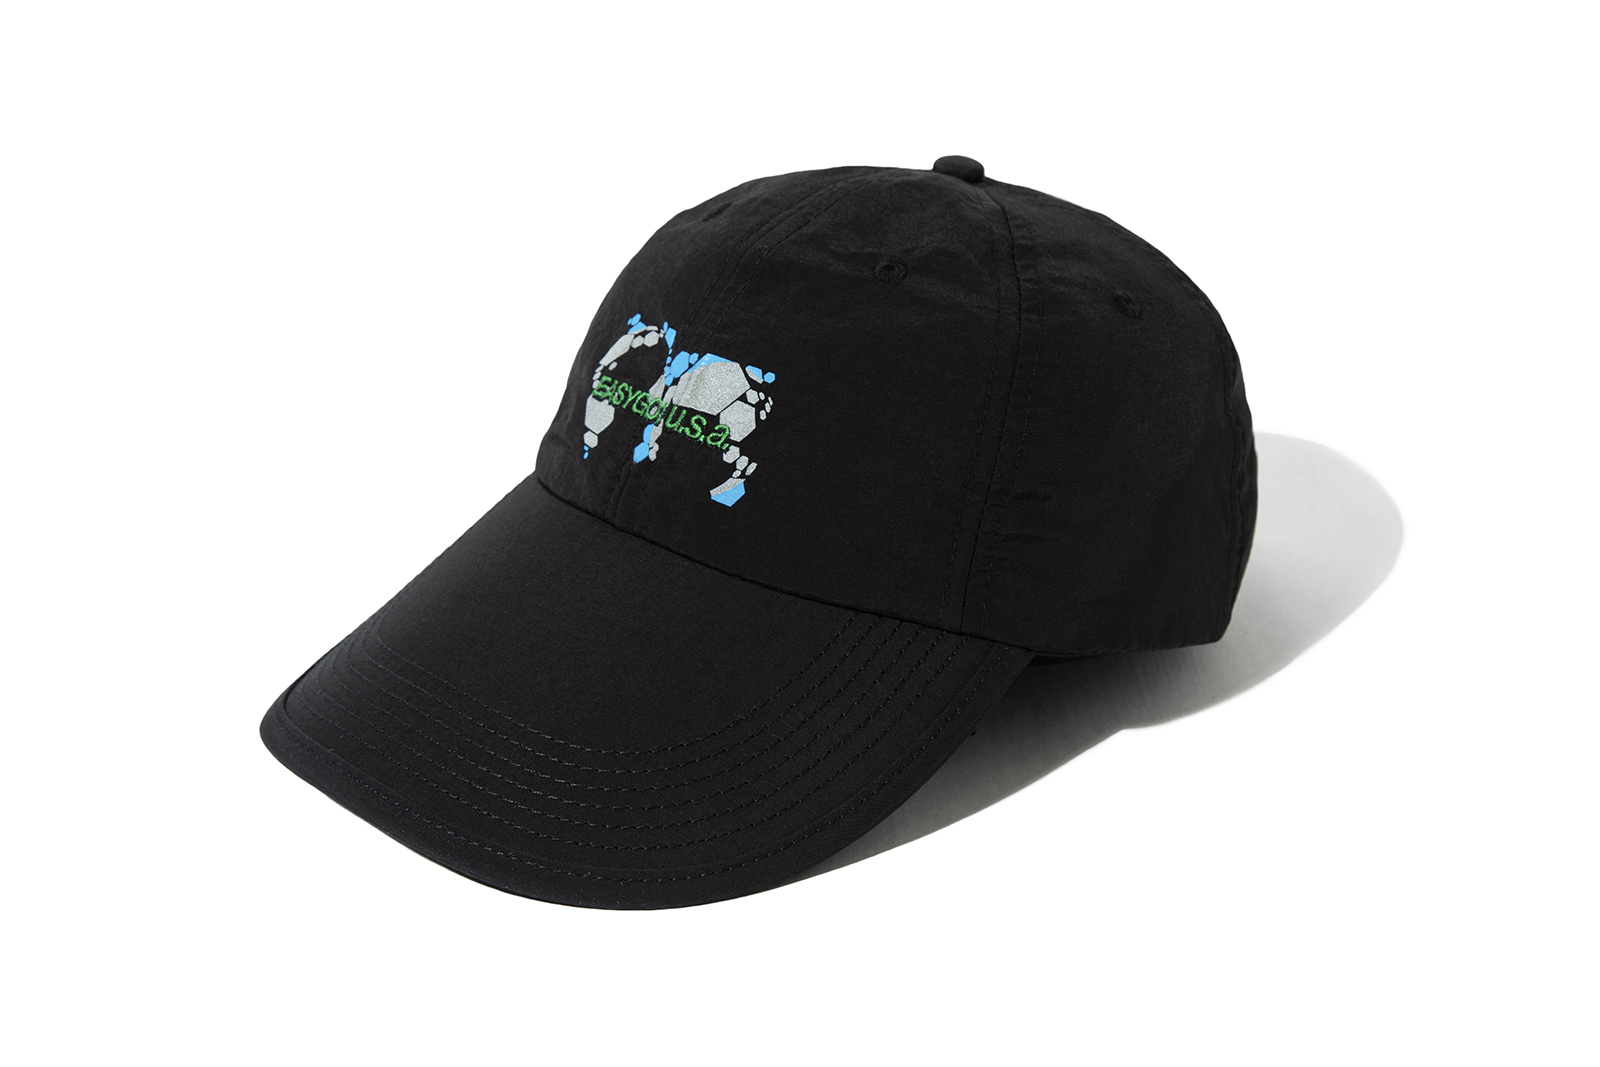 world-in-motion-6-panel-hat_p2